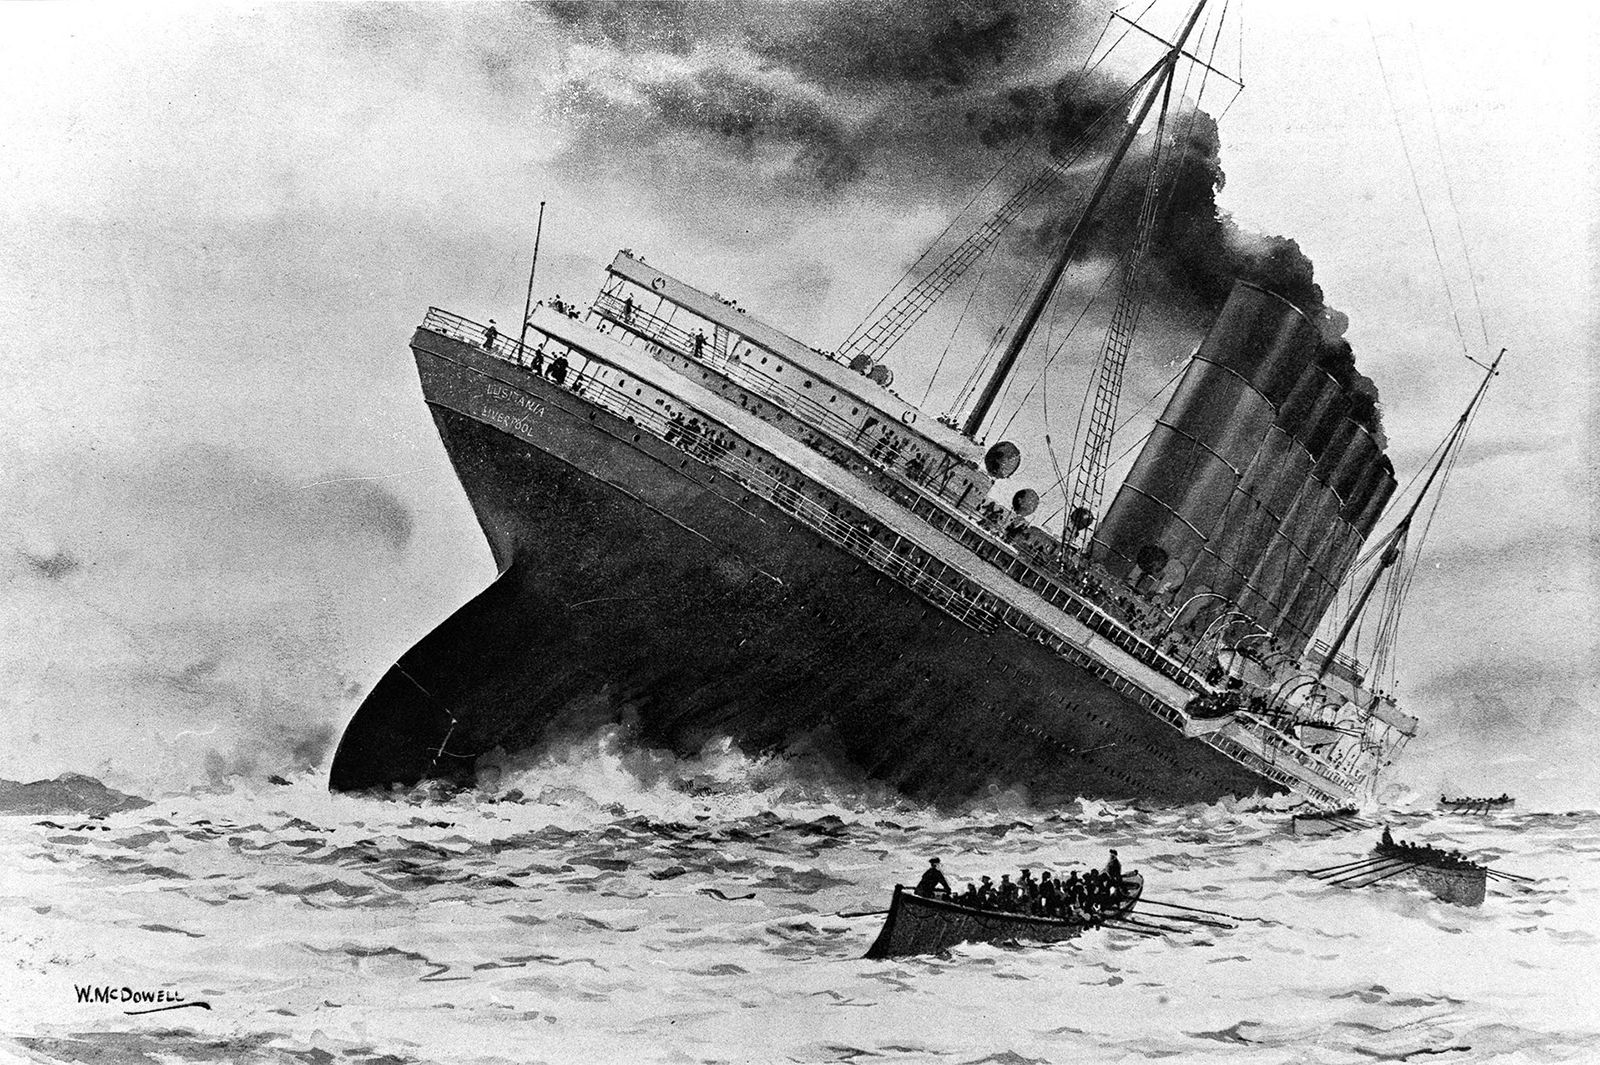 Was There a Cover-Up After the Sinking of the 'Lusitania'?